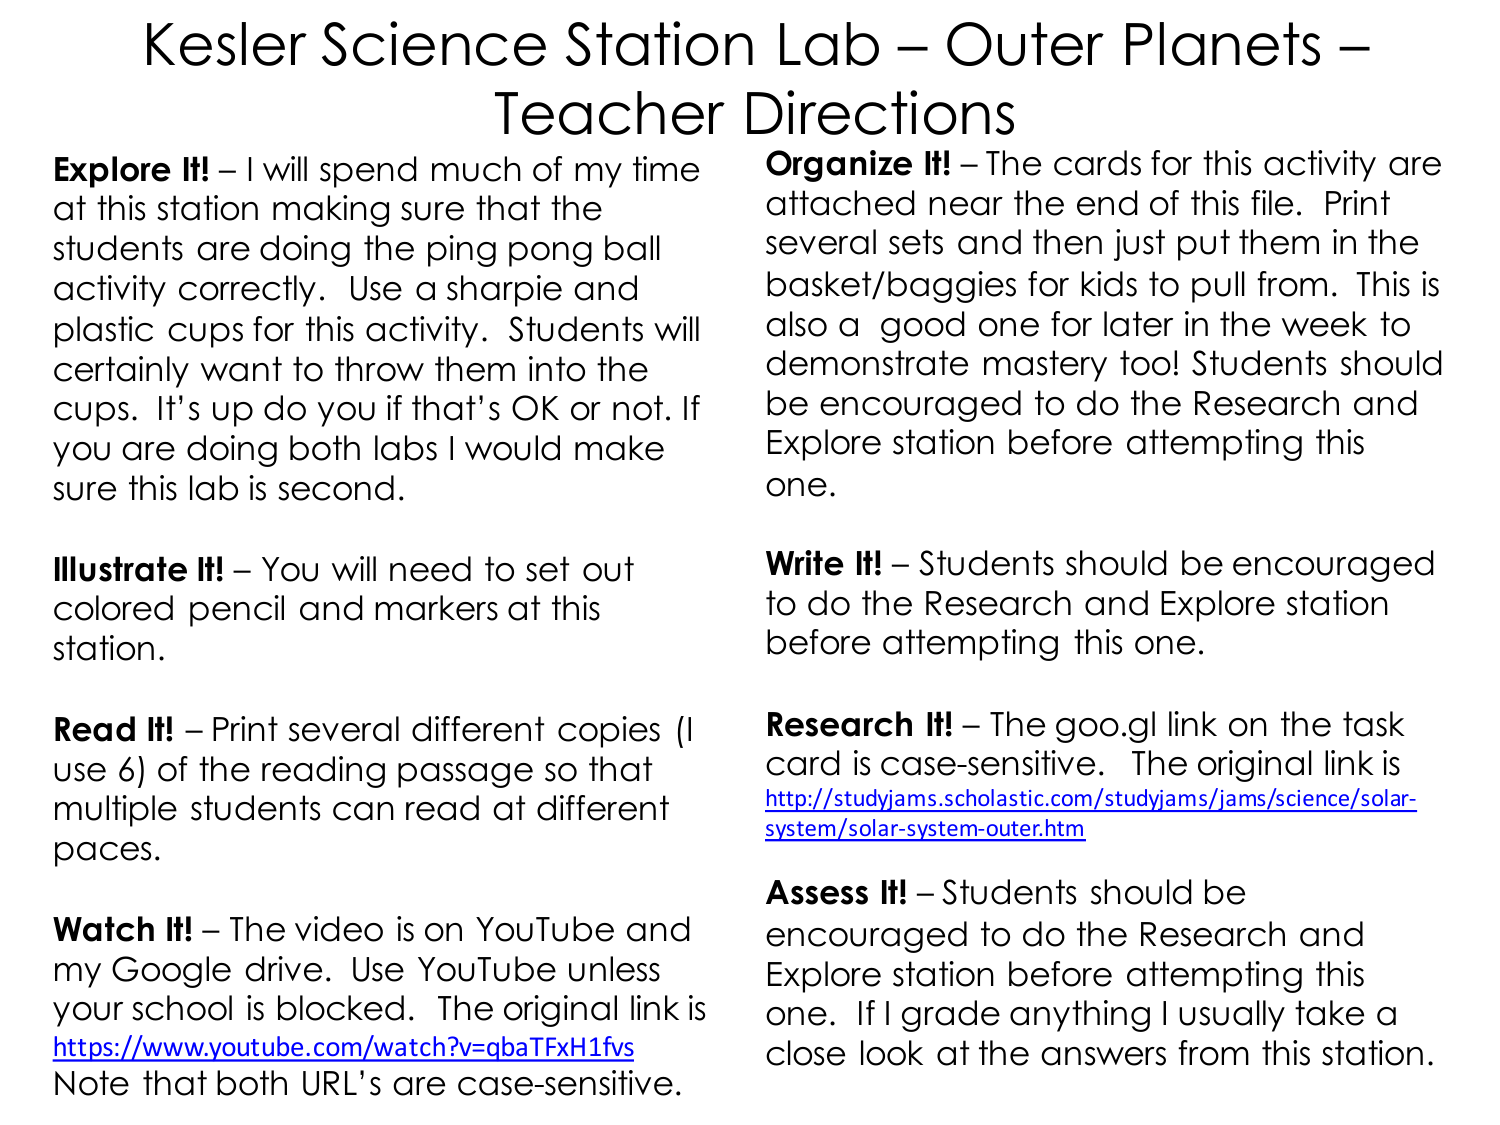 Outer planets lab